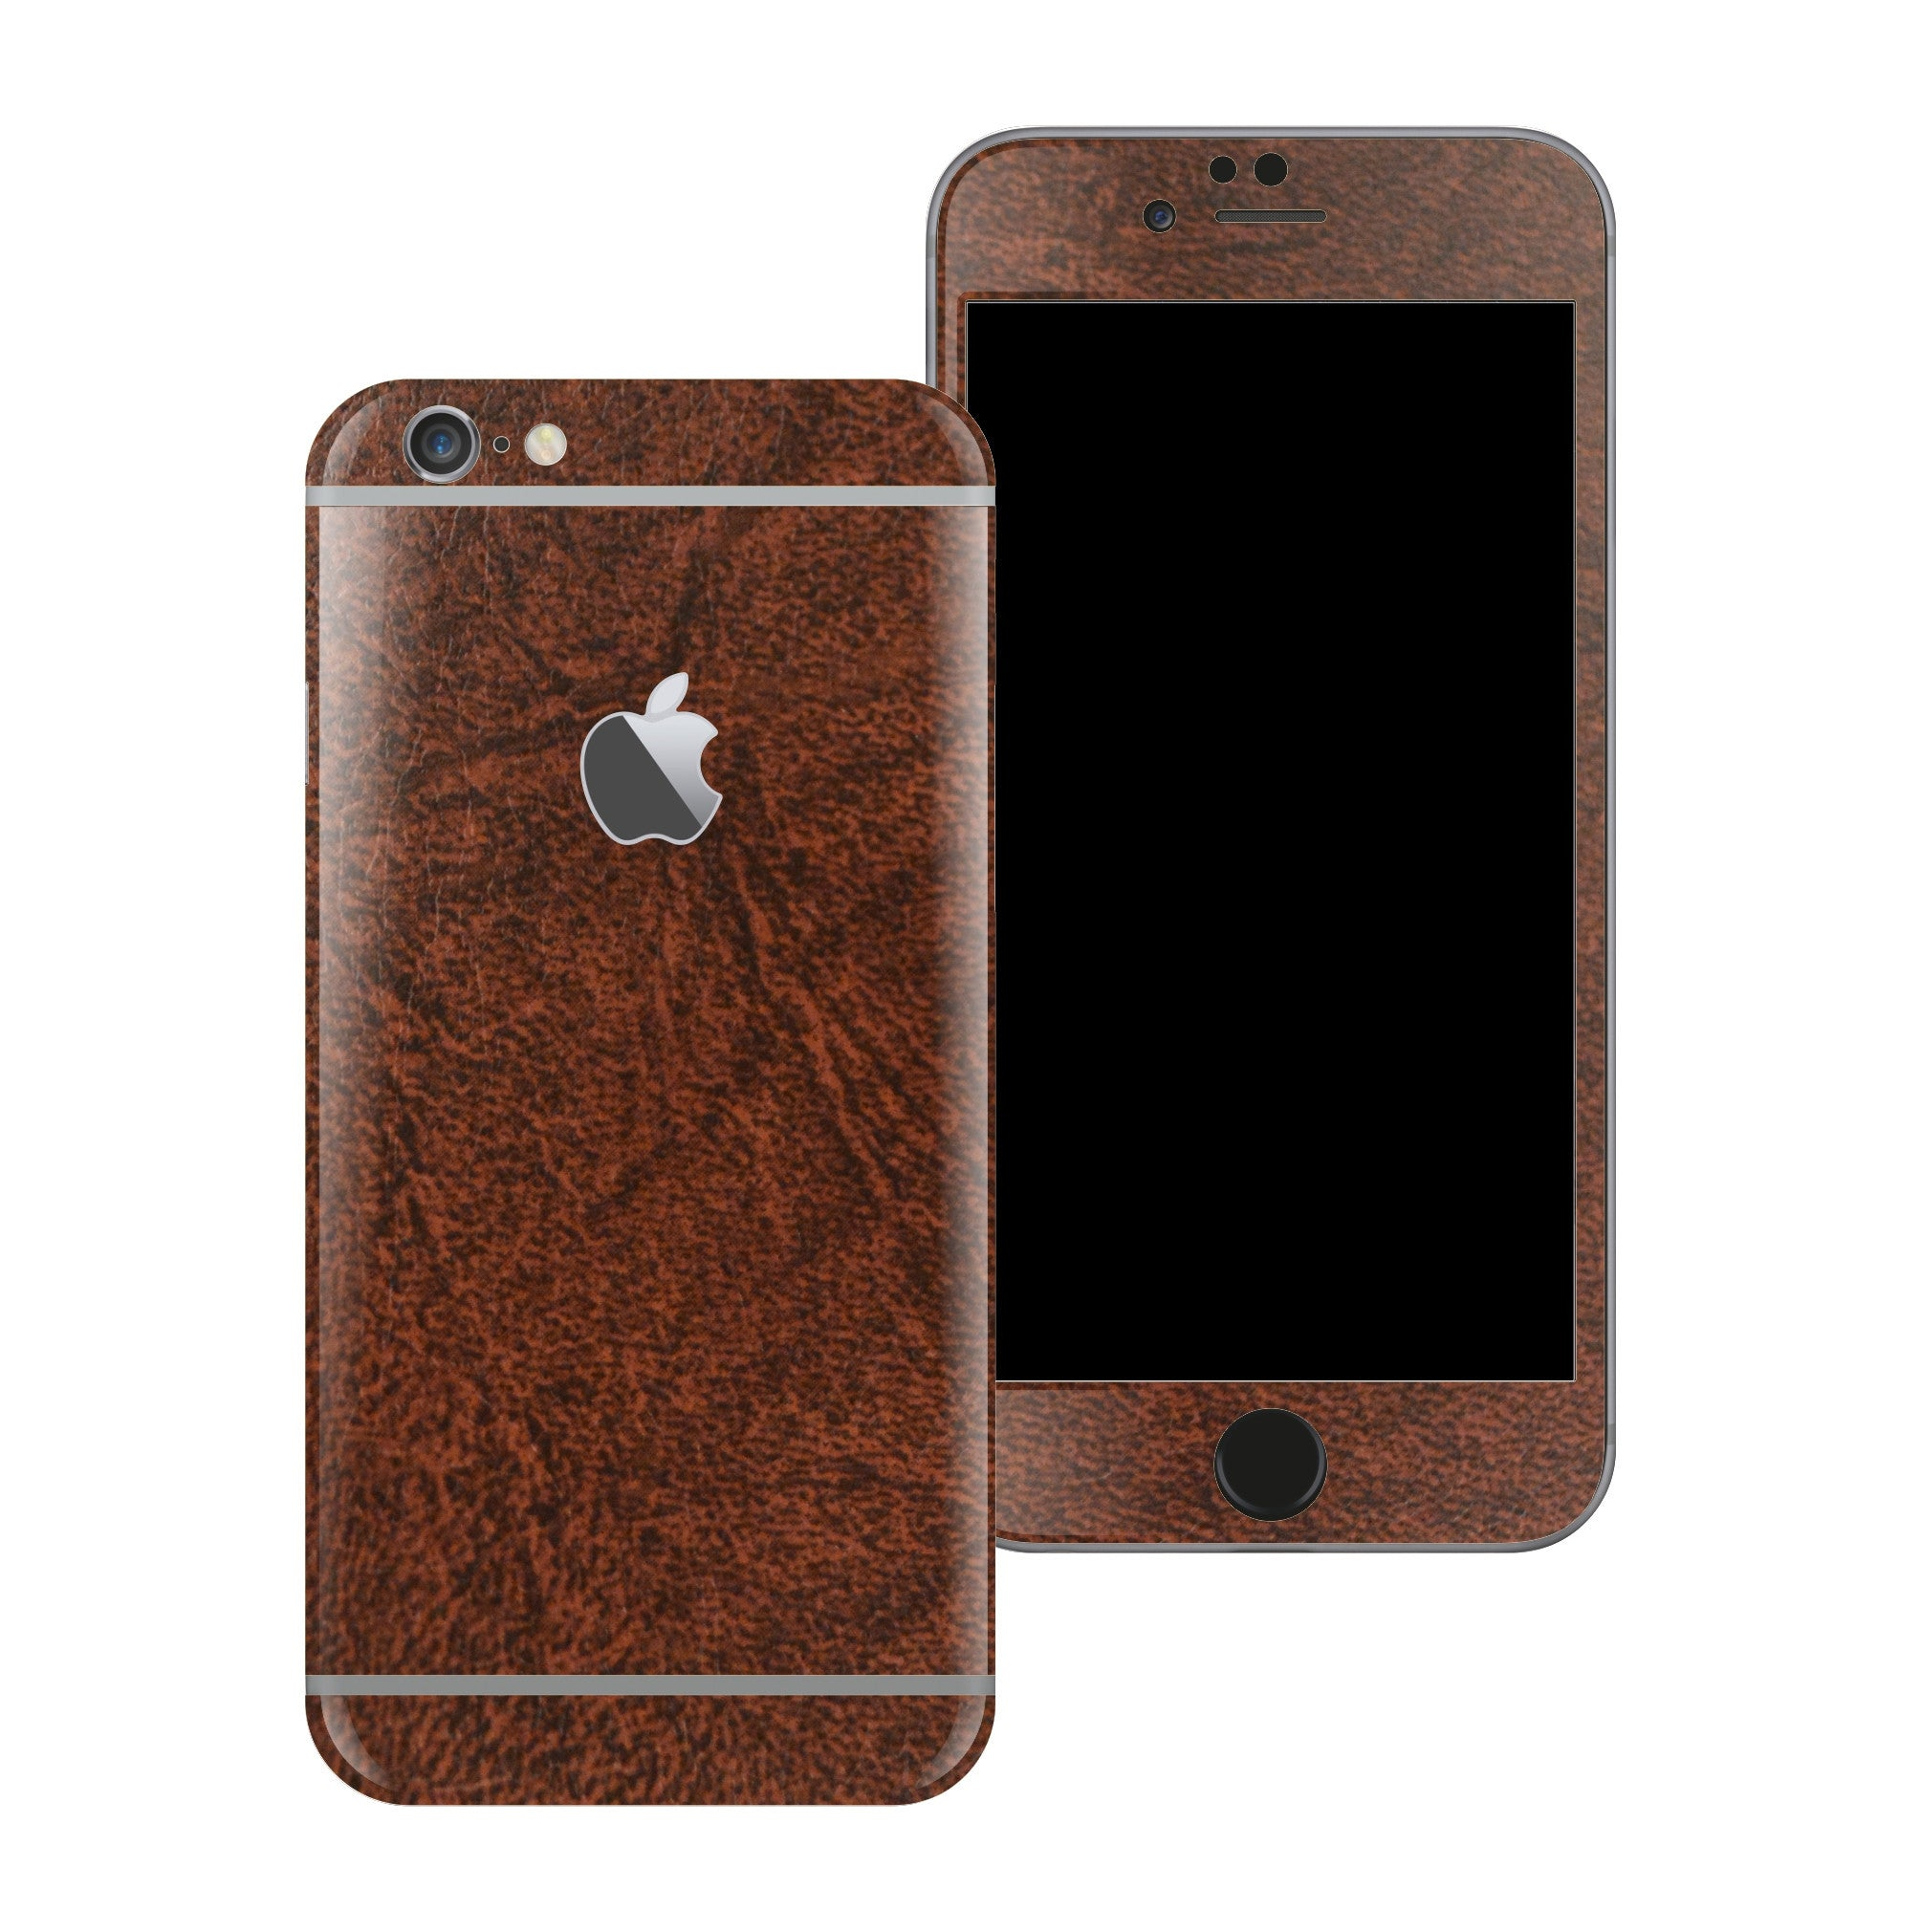 iPhone 6S Plus Luxuria Brown Leather Skin Wrap Decal Protector | EasySkinz